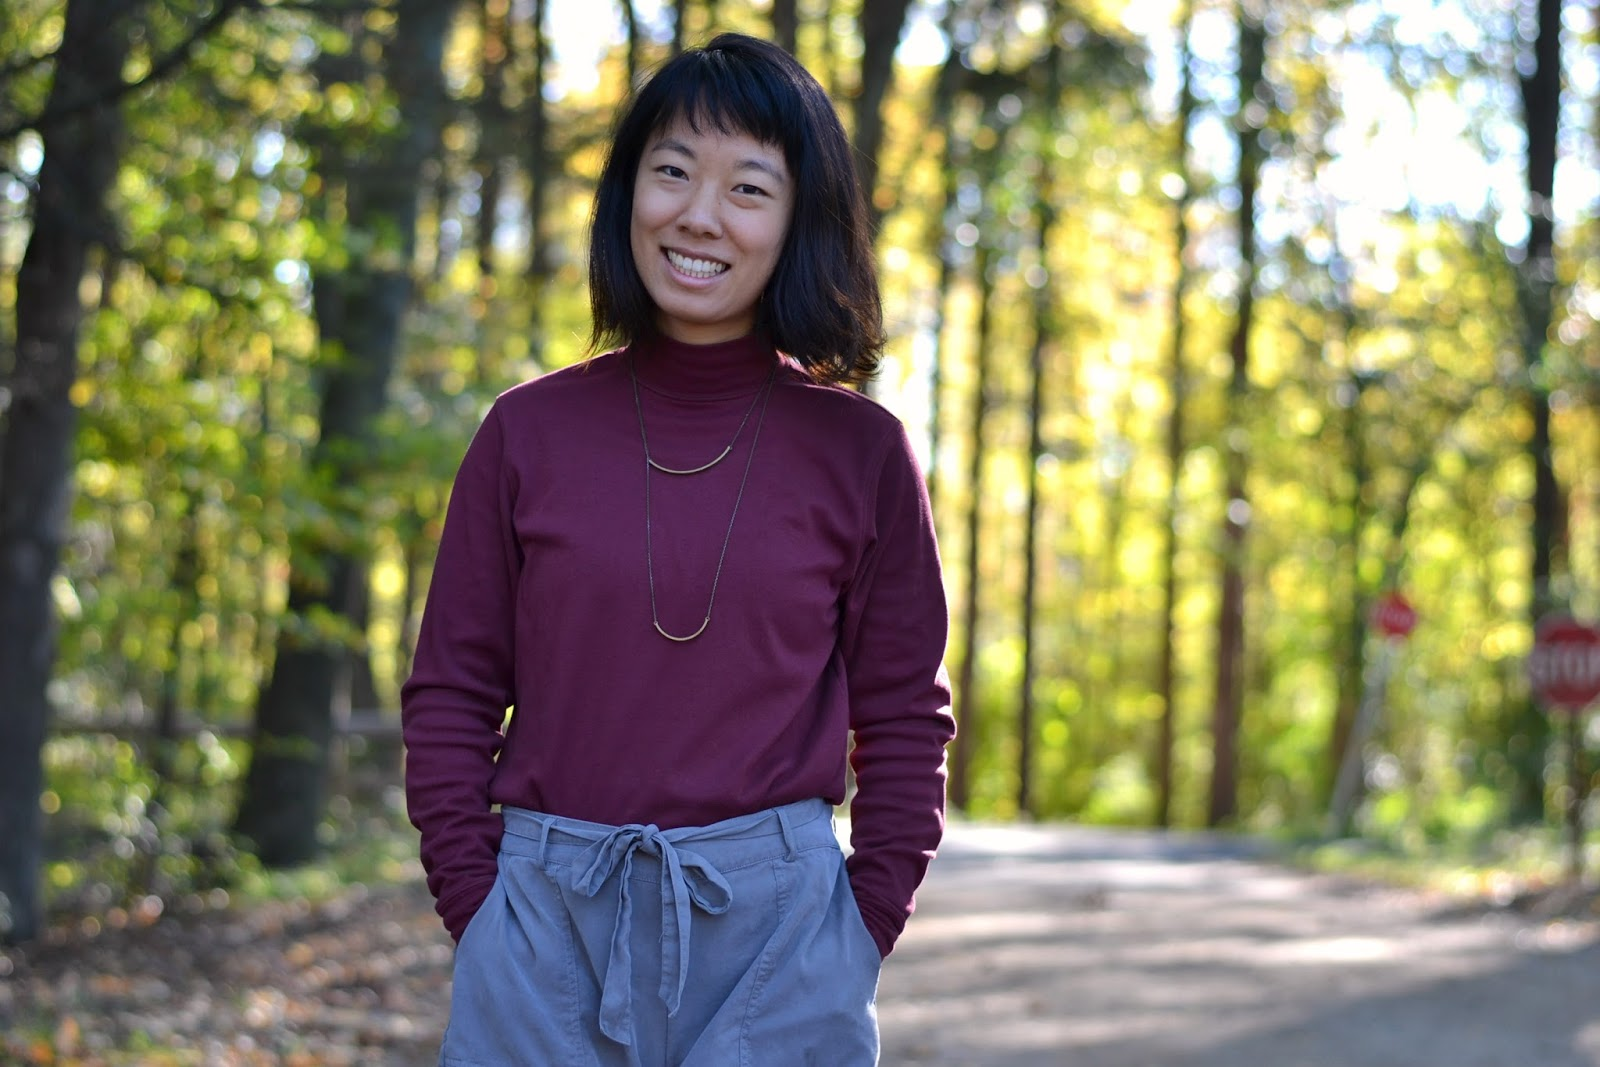 maroon turtleneck outfit